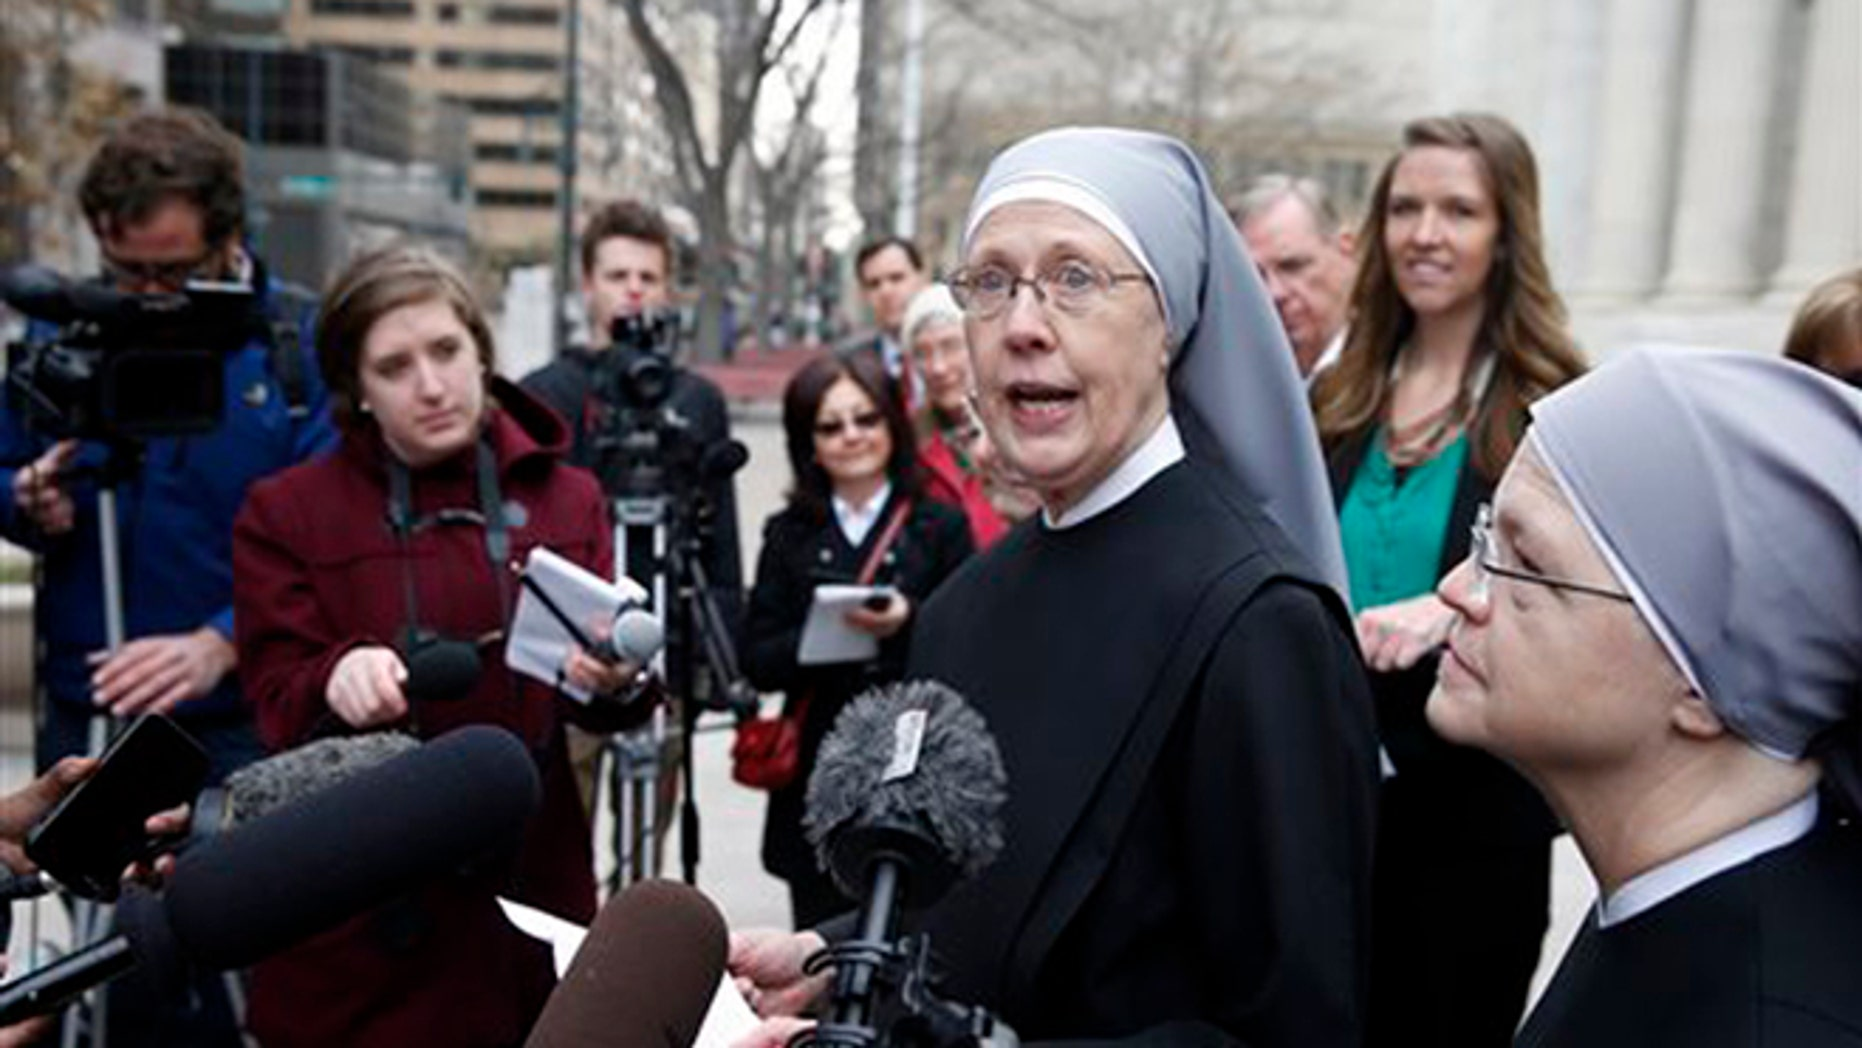 In this Dec. 8, 2014, file photo, Sister Loraine Marie Maguire, of Little Sisters of the Poor, speaks to members of the media after attending a hearing in the 10th U.S. Circuit Court of Appeals, in Denver, Colo.